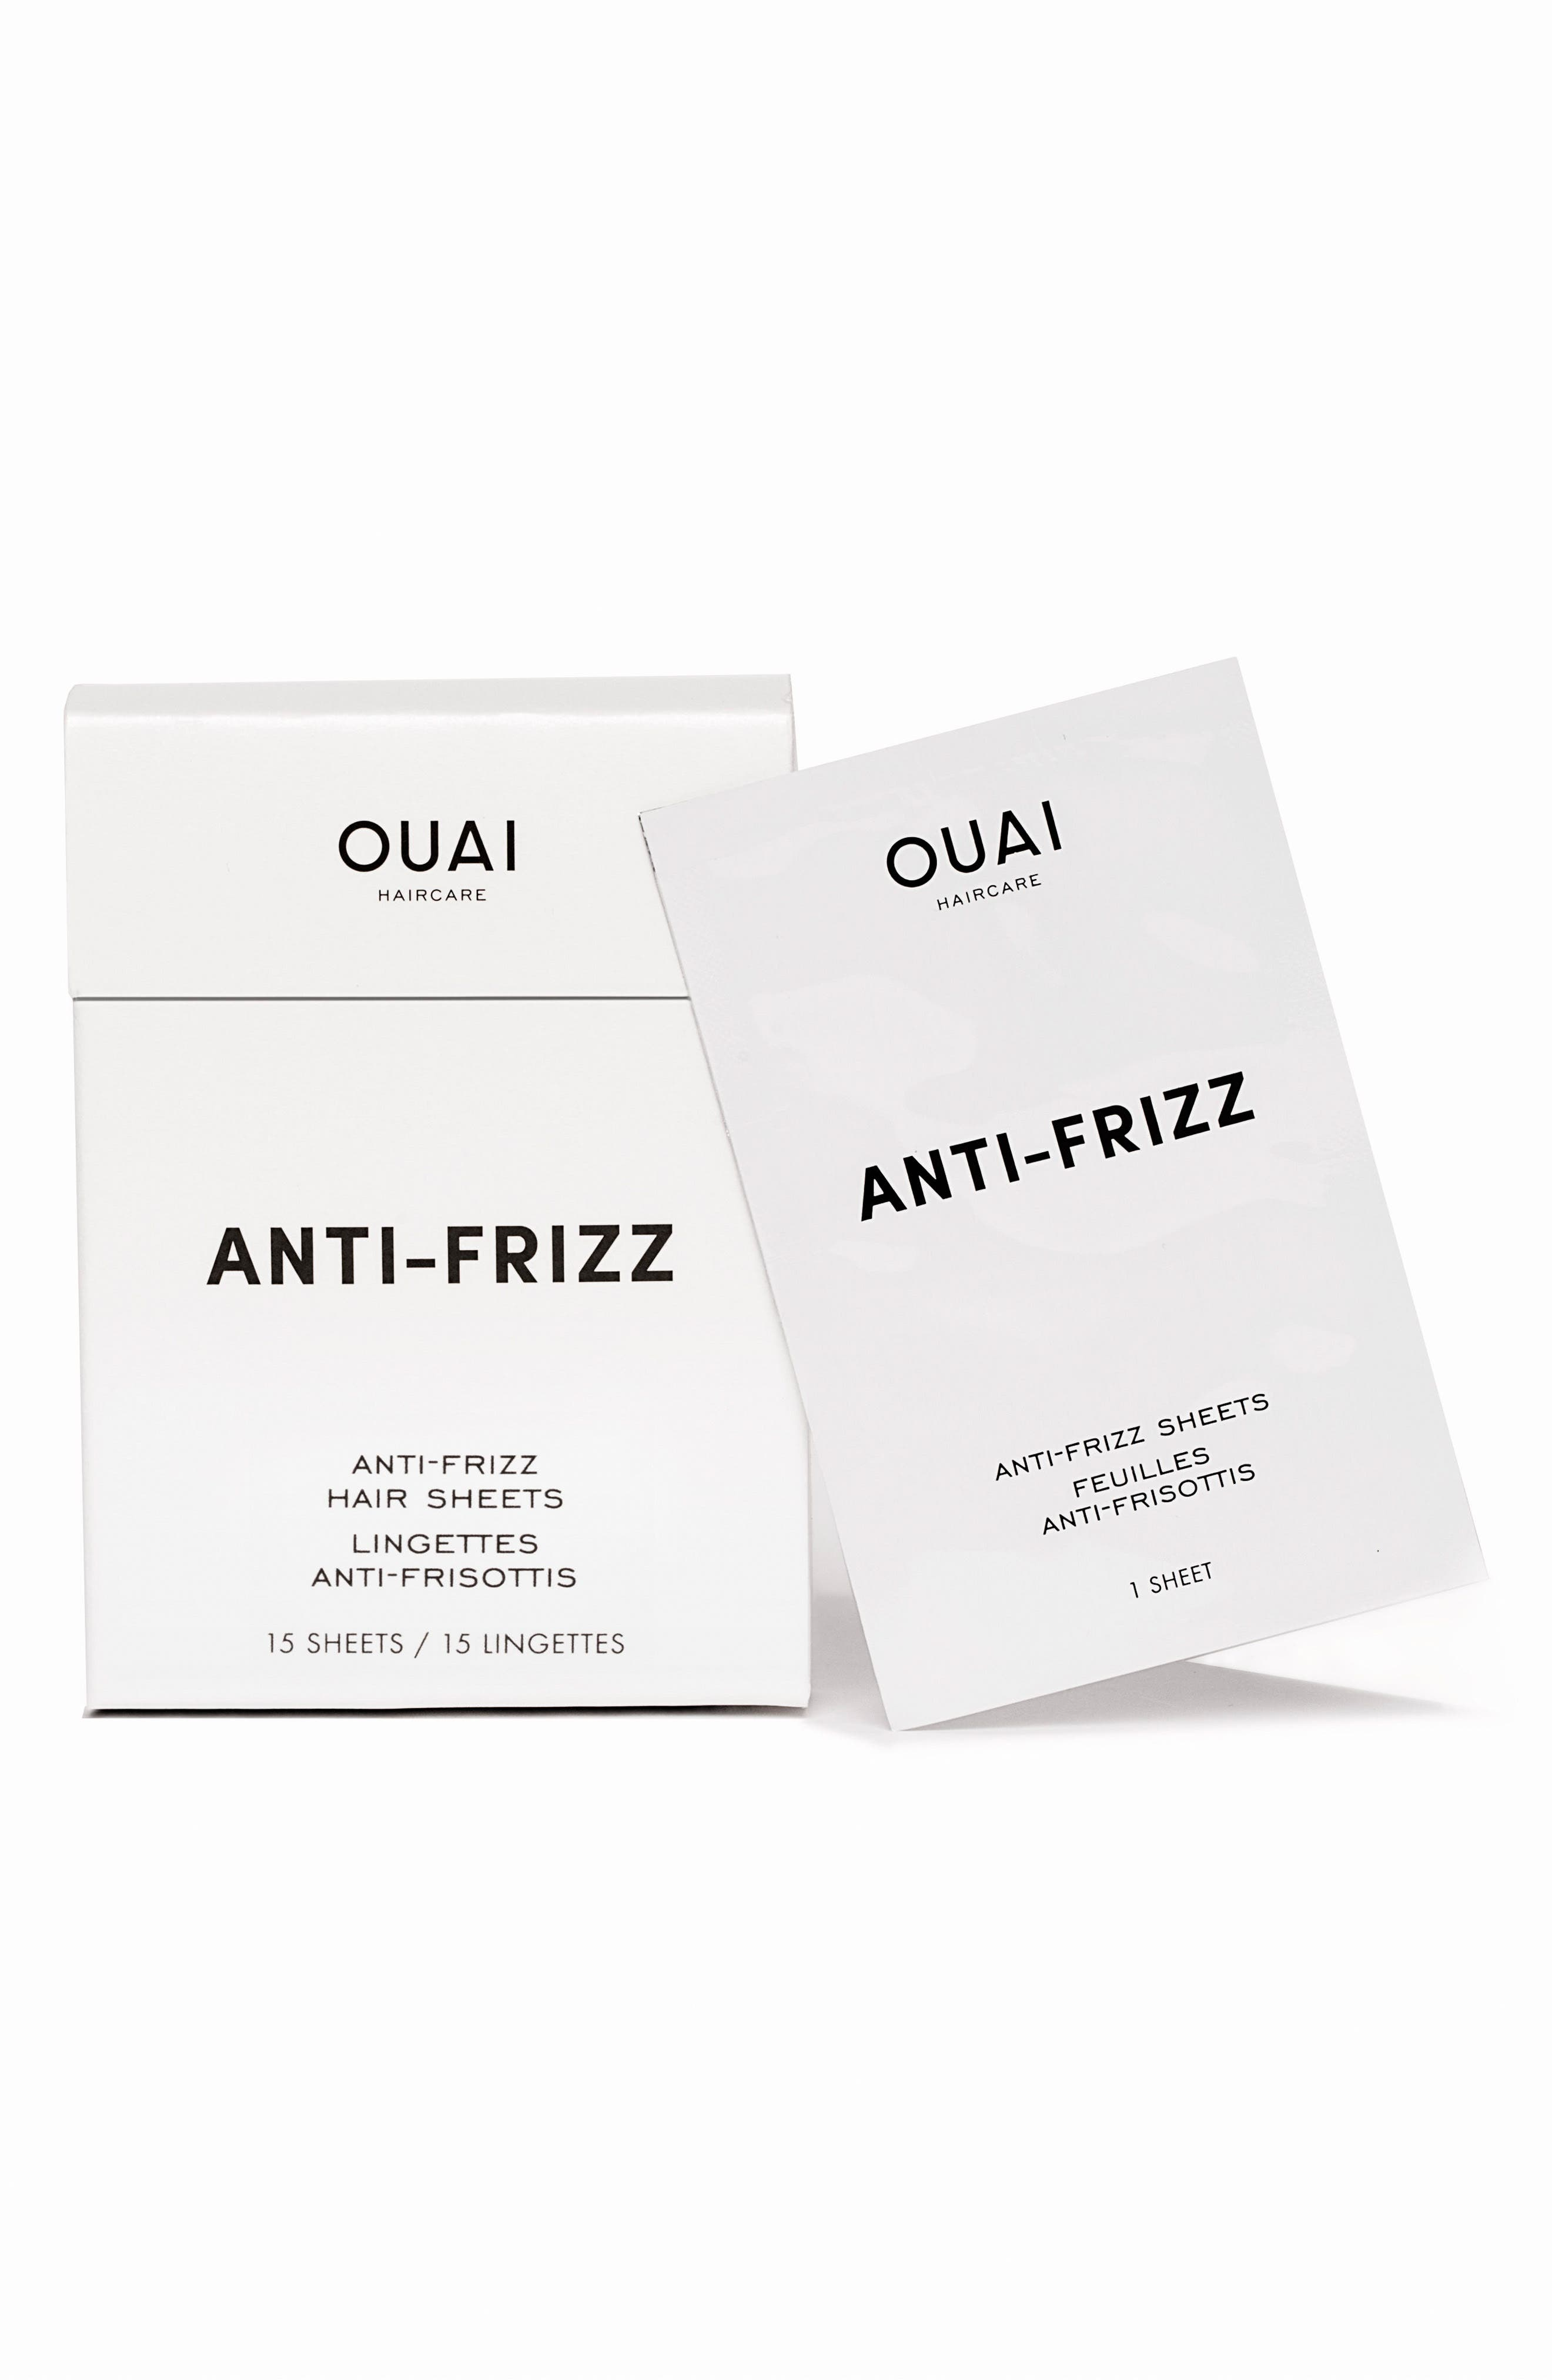 OUAI Anti-Frizz Smoothing Sheets